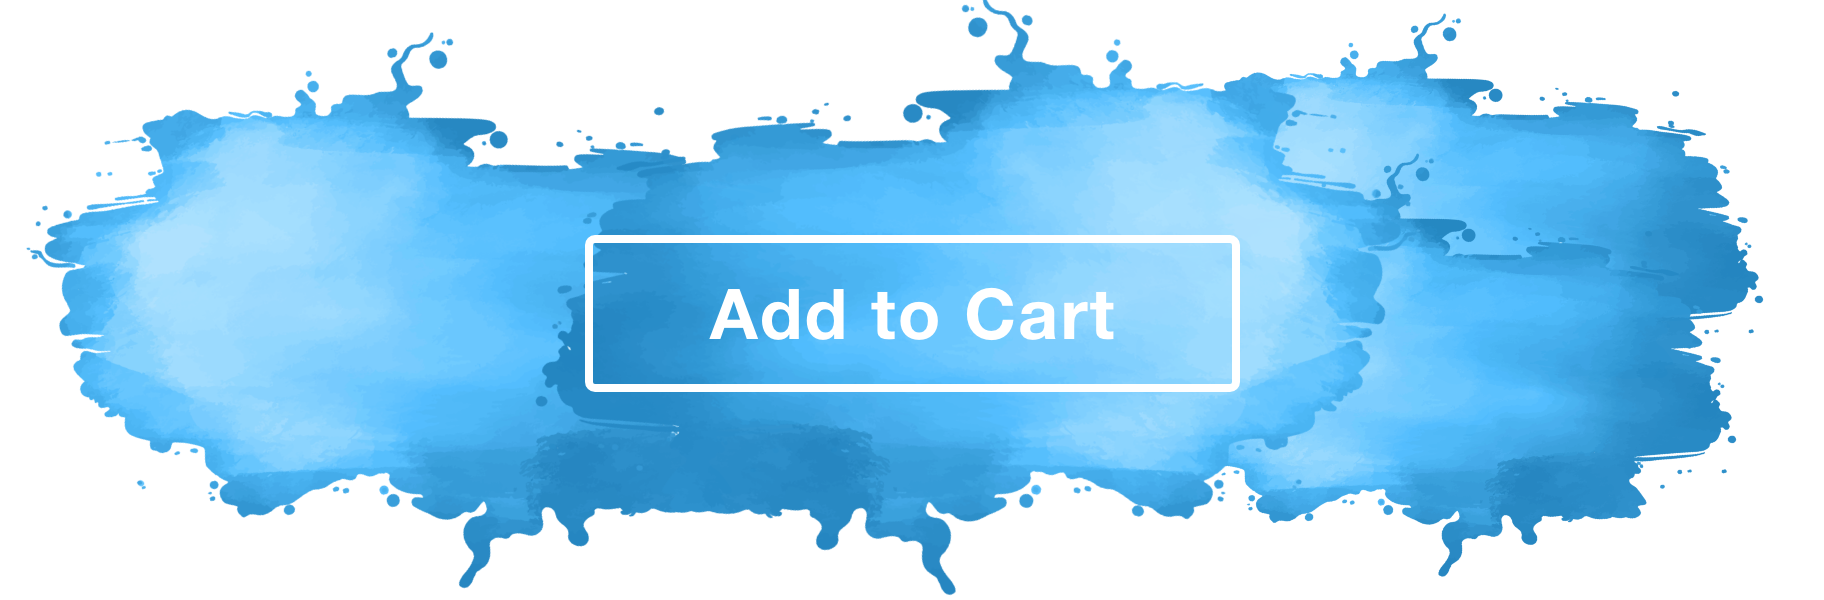 add to cart button blue